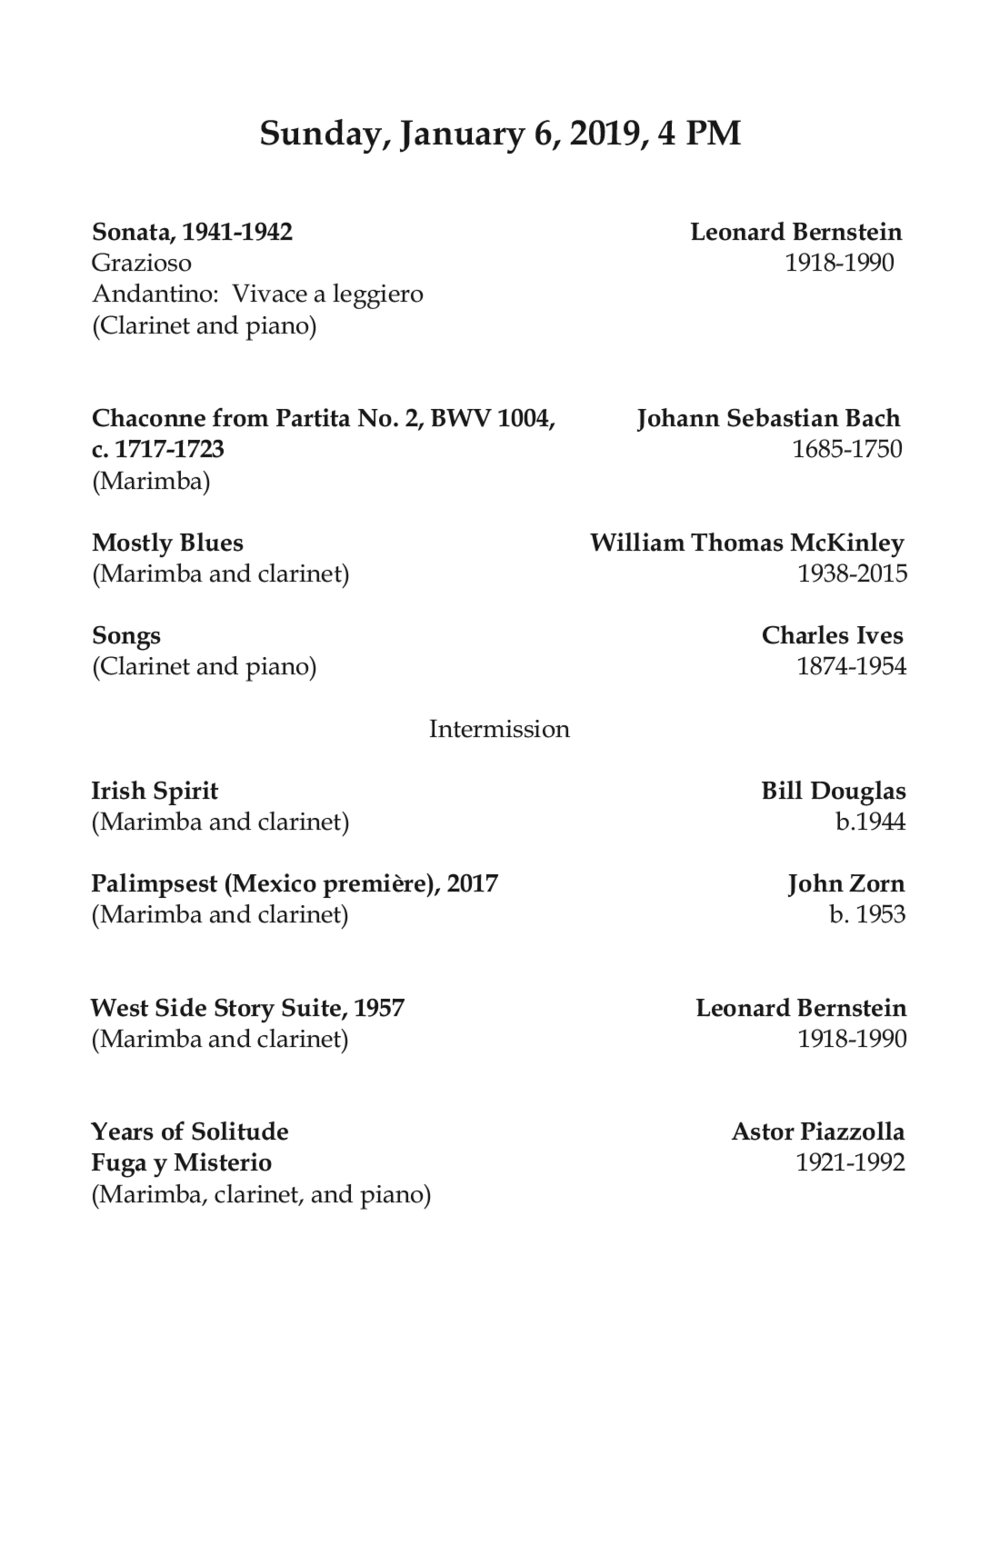 Promusica - program pages 2018-19-4.jpg